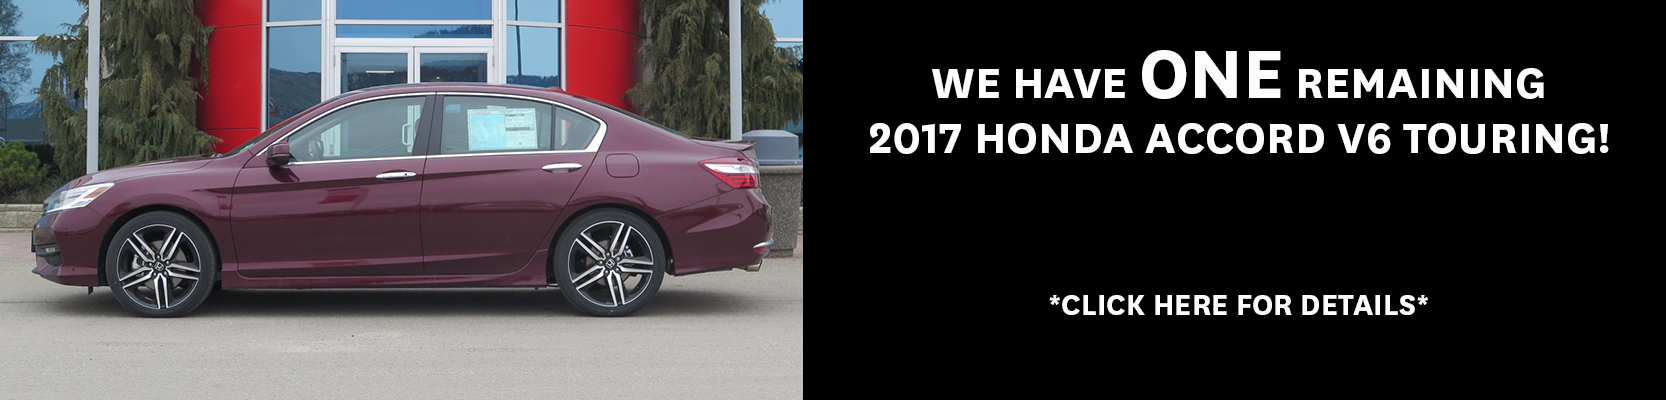 2017 Honda Accord V6 Touring